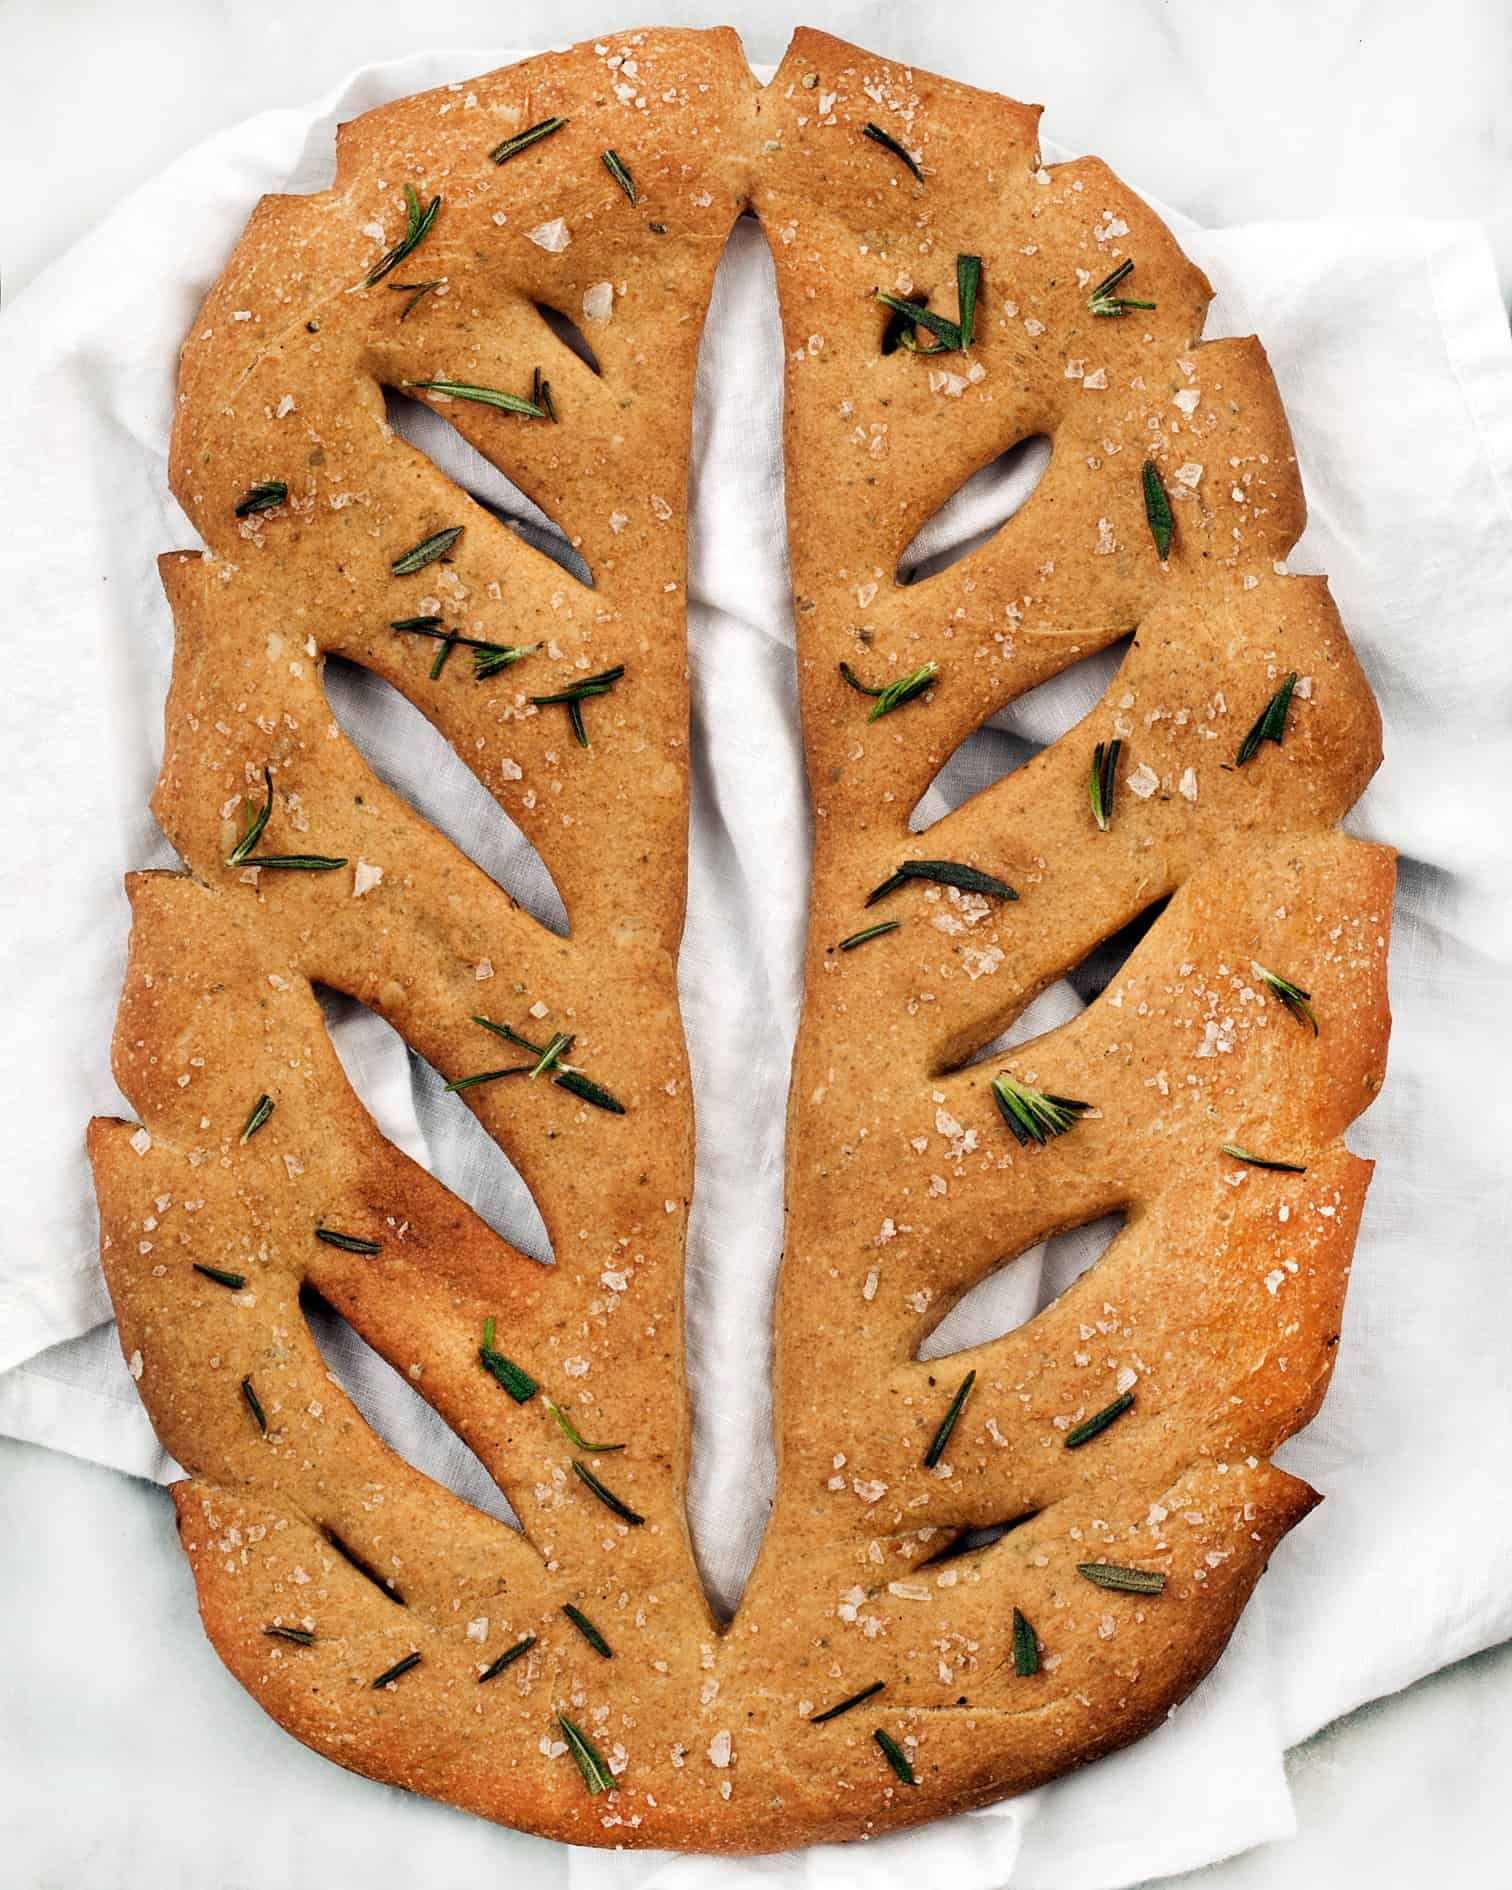 Rosemary Fougasse with Sea Salt | Last Ingredient #tearandsharebread